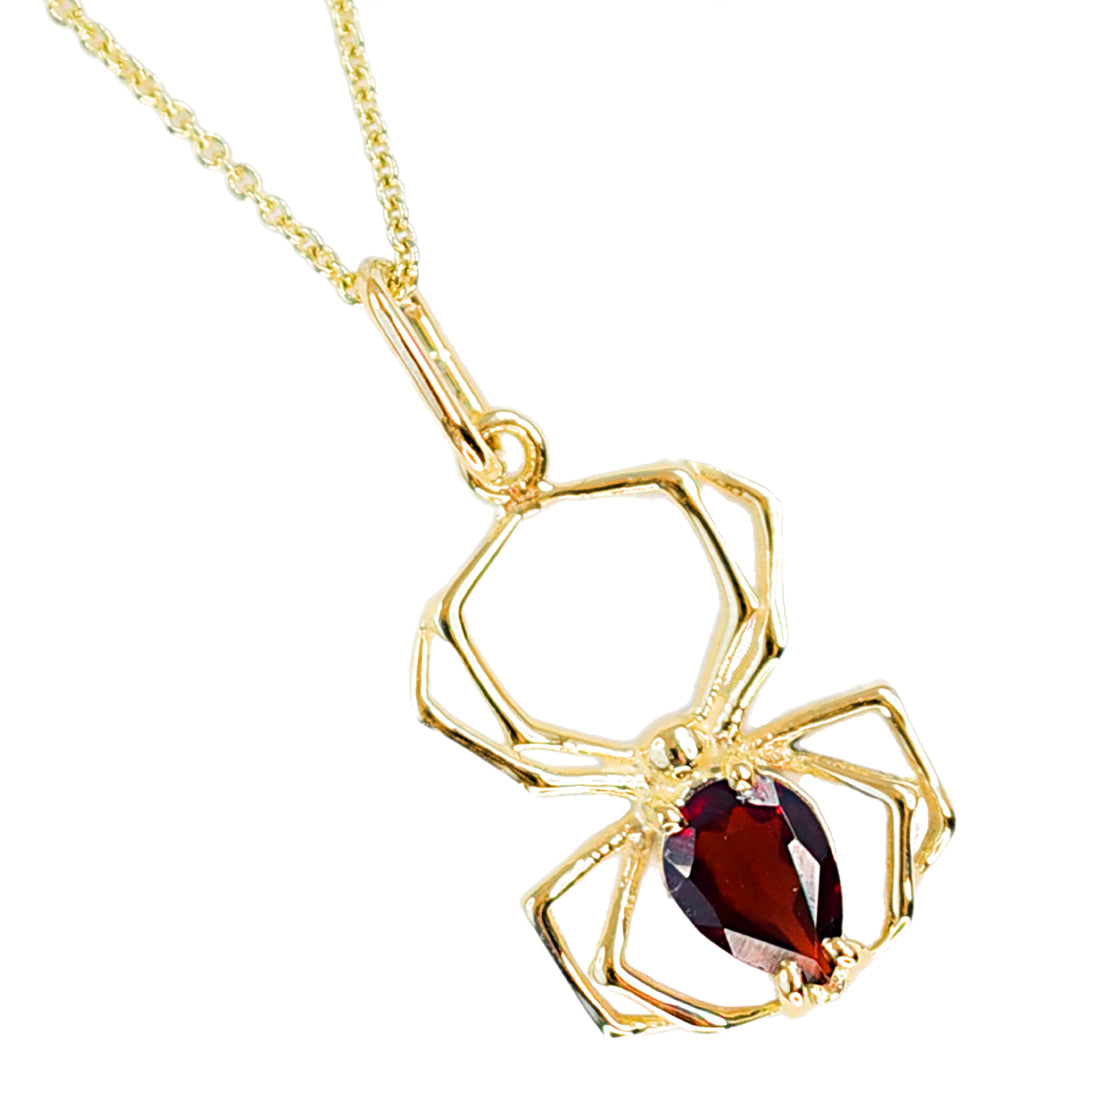 14K Yellow Gold and Garnet Spider Pendant-Pendant-Inchoo Bijoux-Inchoo Bijoux